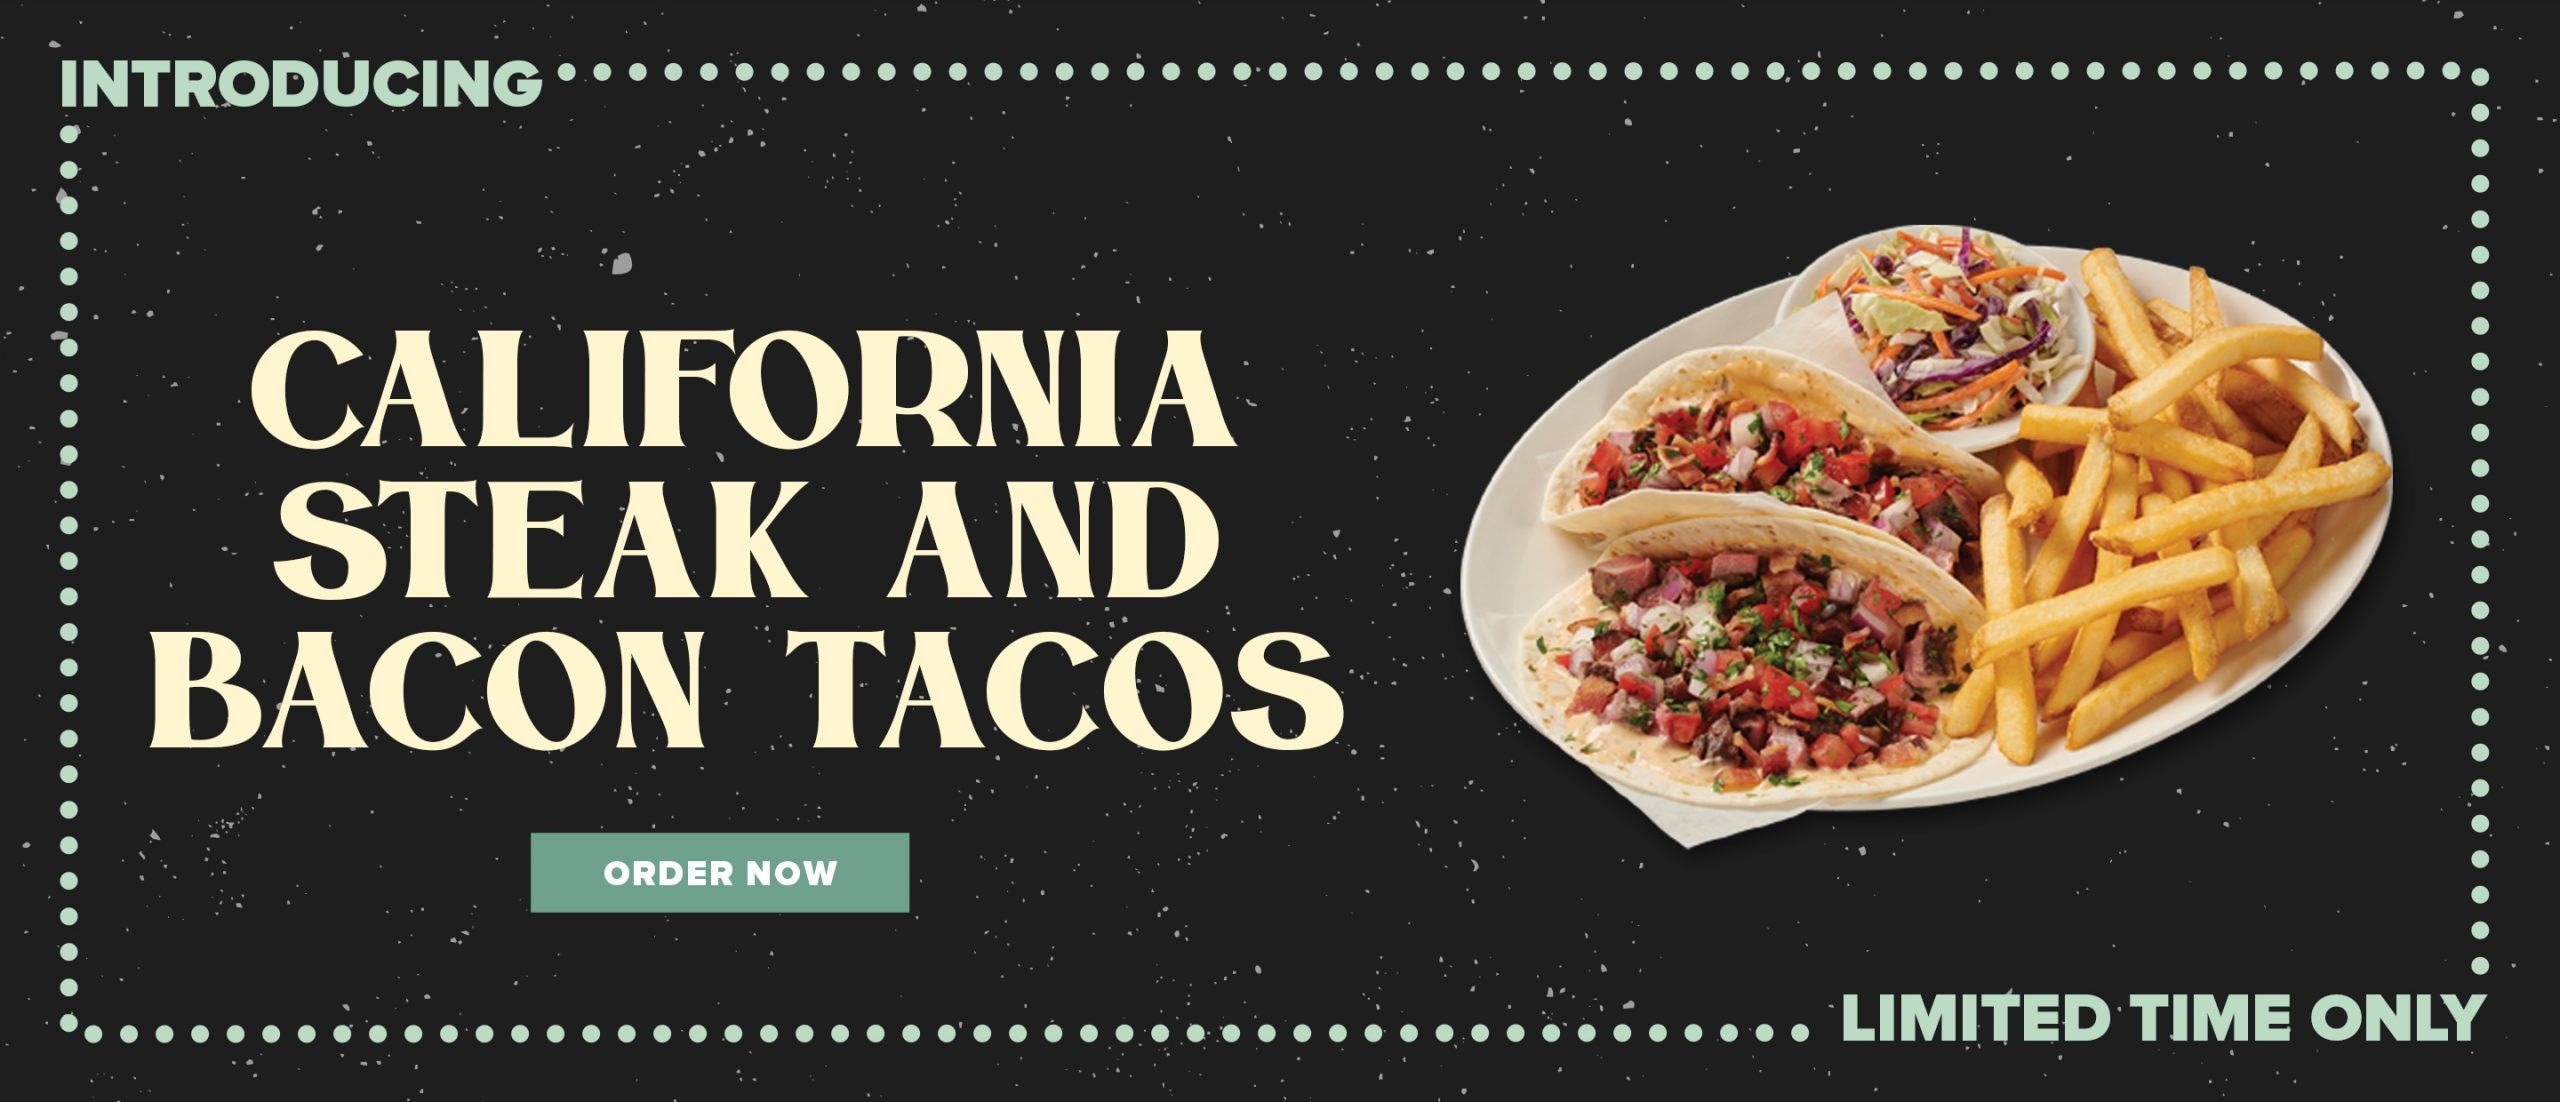 California Steak and Bacon Tacos. Order Now for a Limited Time.